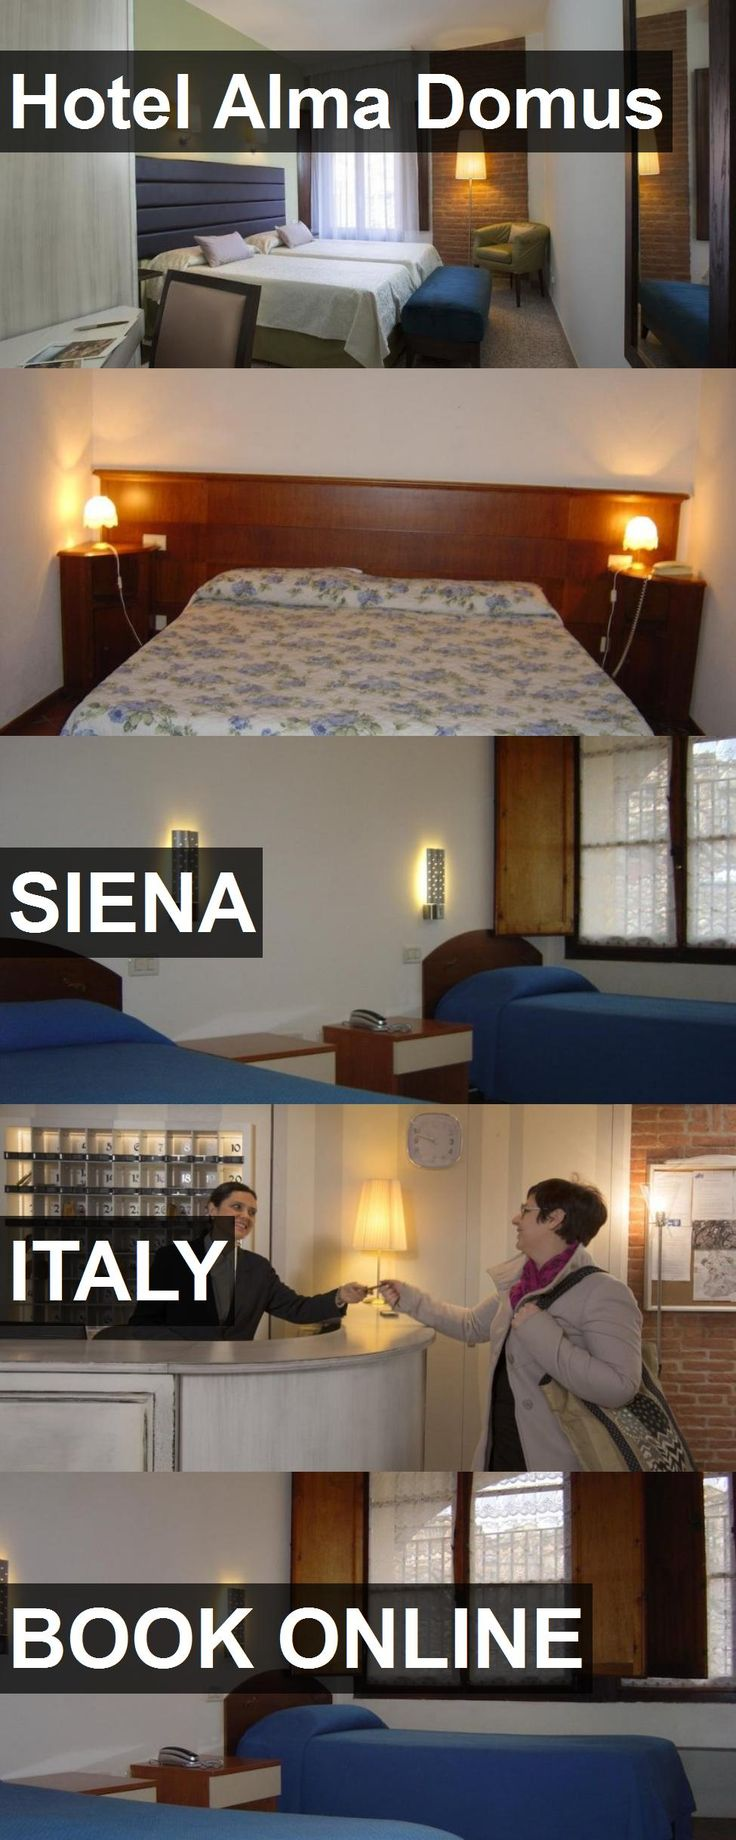 Hotel Hotel Alma Domus in Siena, Italy. For more information, photos, reviews and best prices please follow the link. #Italy #Siena #HotelAlmaDomus #hotel #travel #vacation